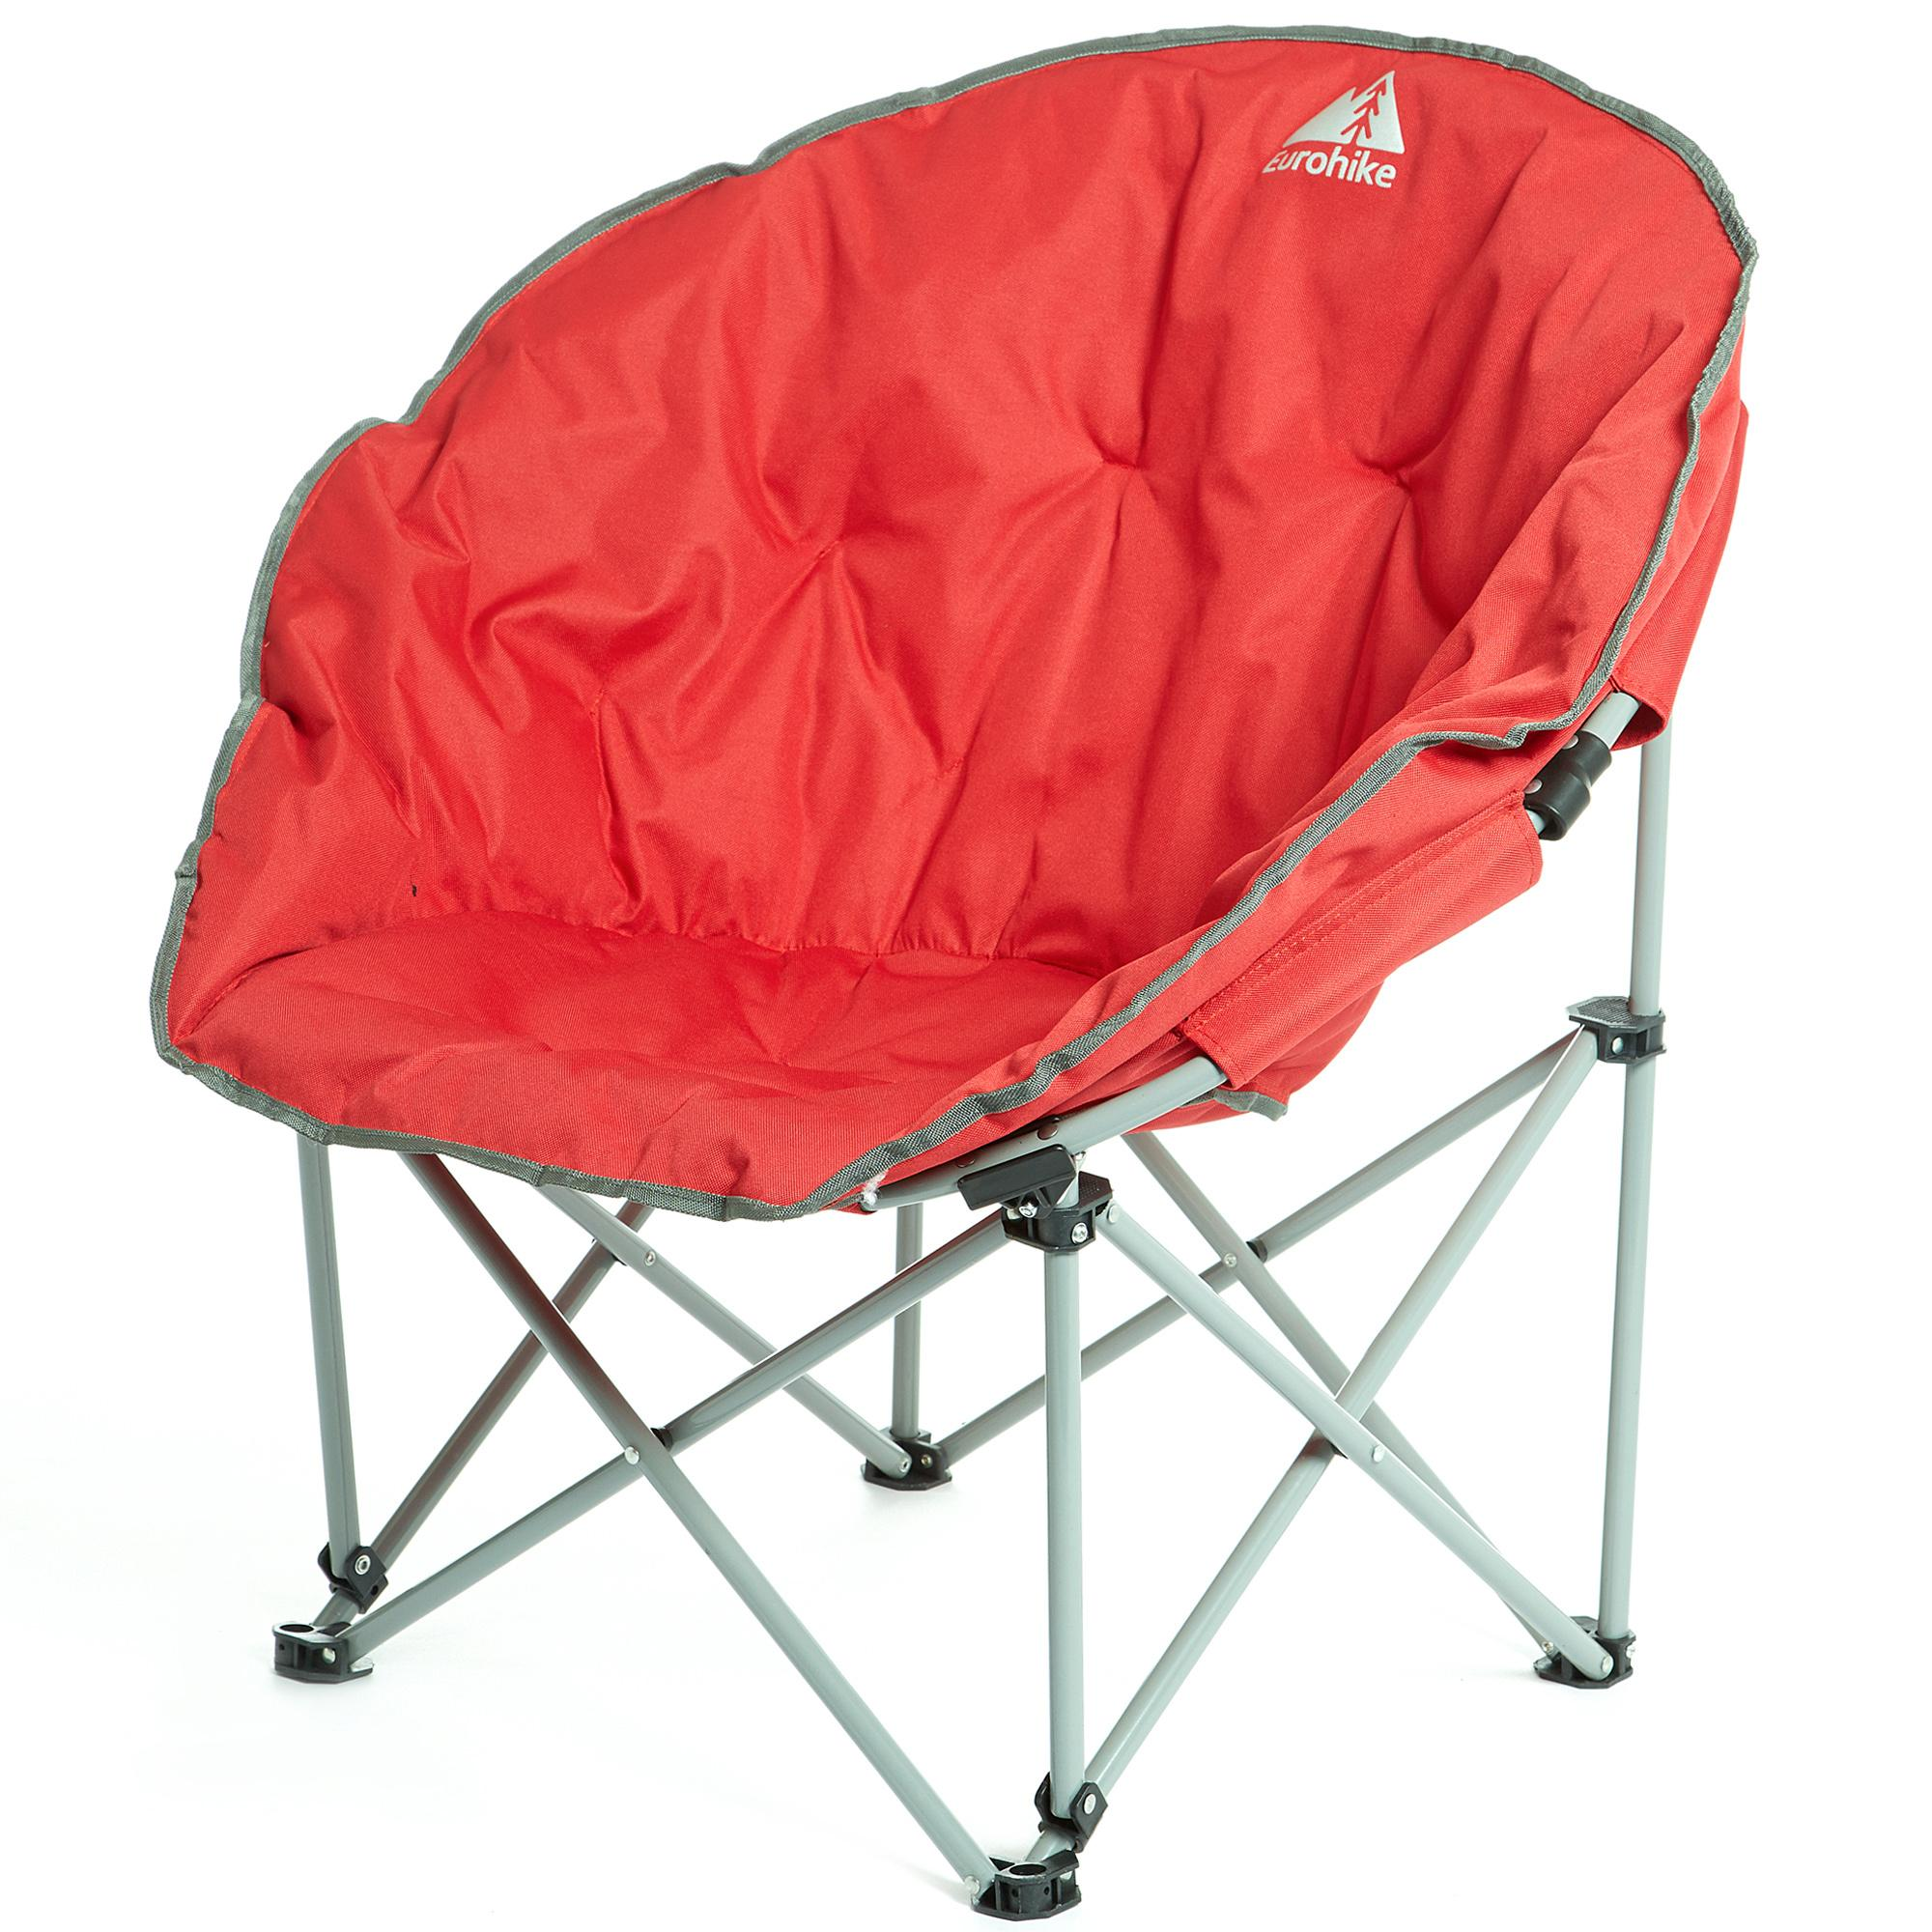 Details about EUROHIKE Deluxe Moon Chair - Red